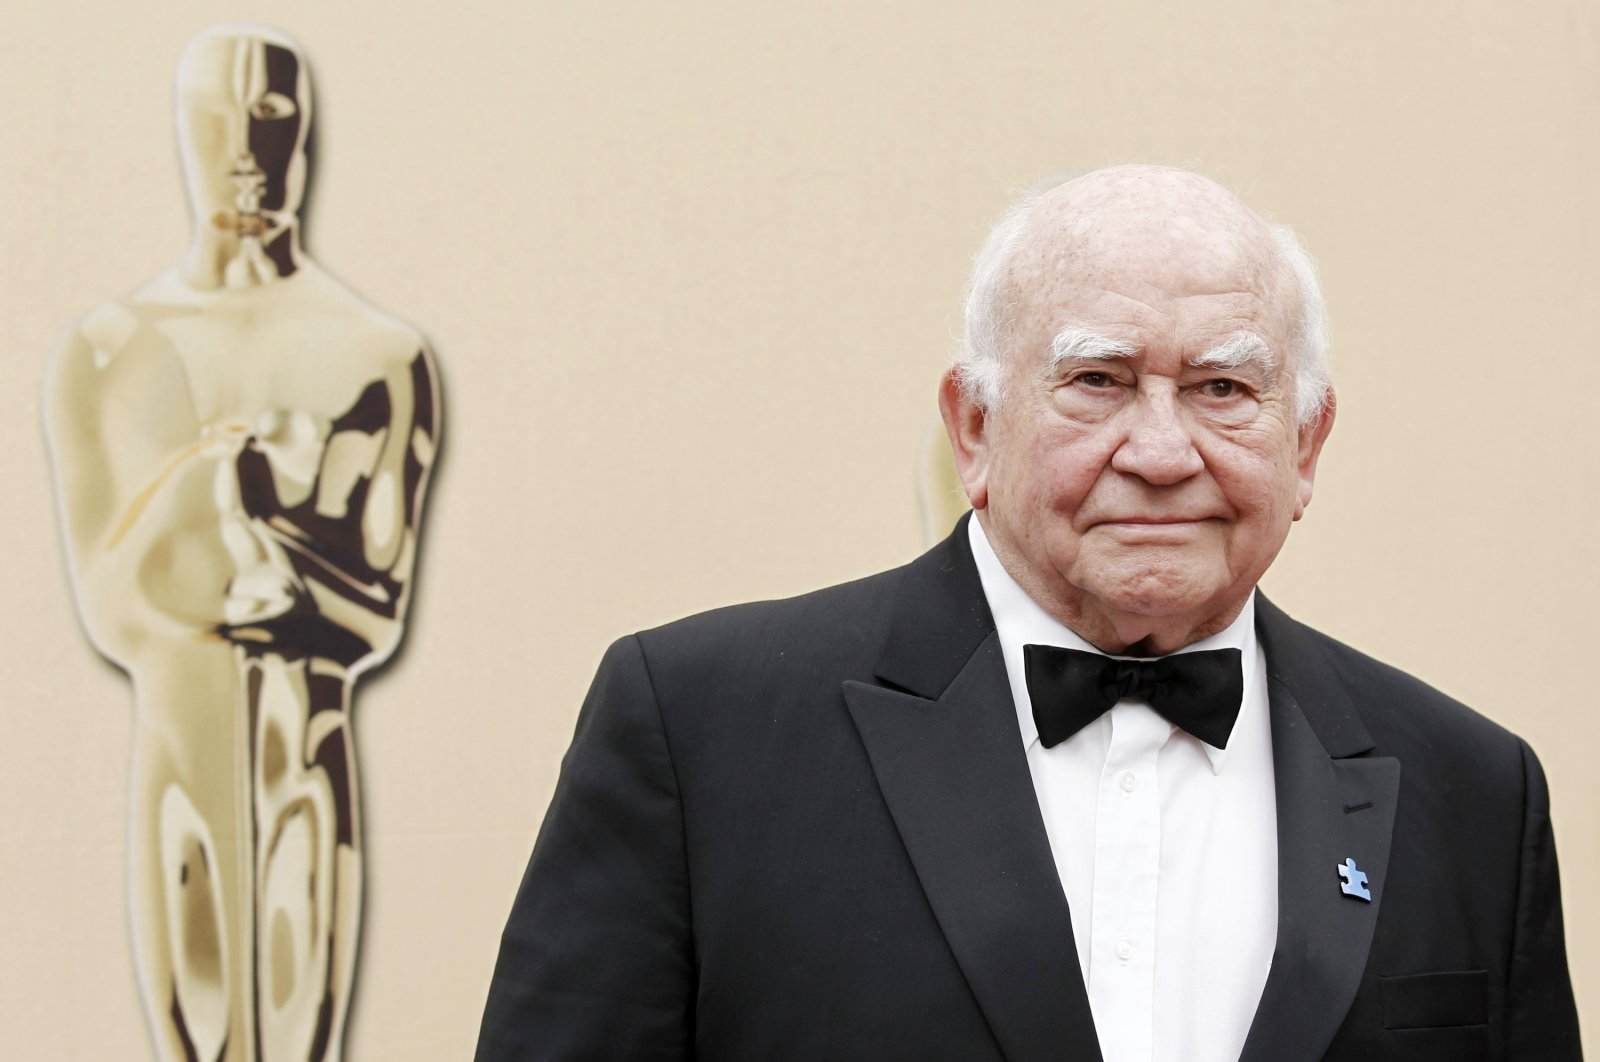 Actor Ed Asner arrives during the 82nd Academy Awards in the Hollywood section of Los Angeles, U.S., March 7, 2010. (AP Photo)